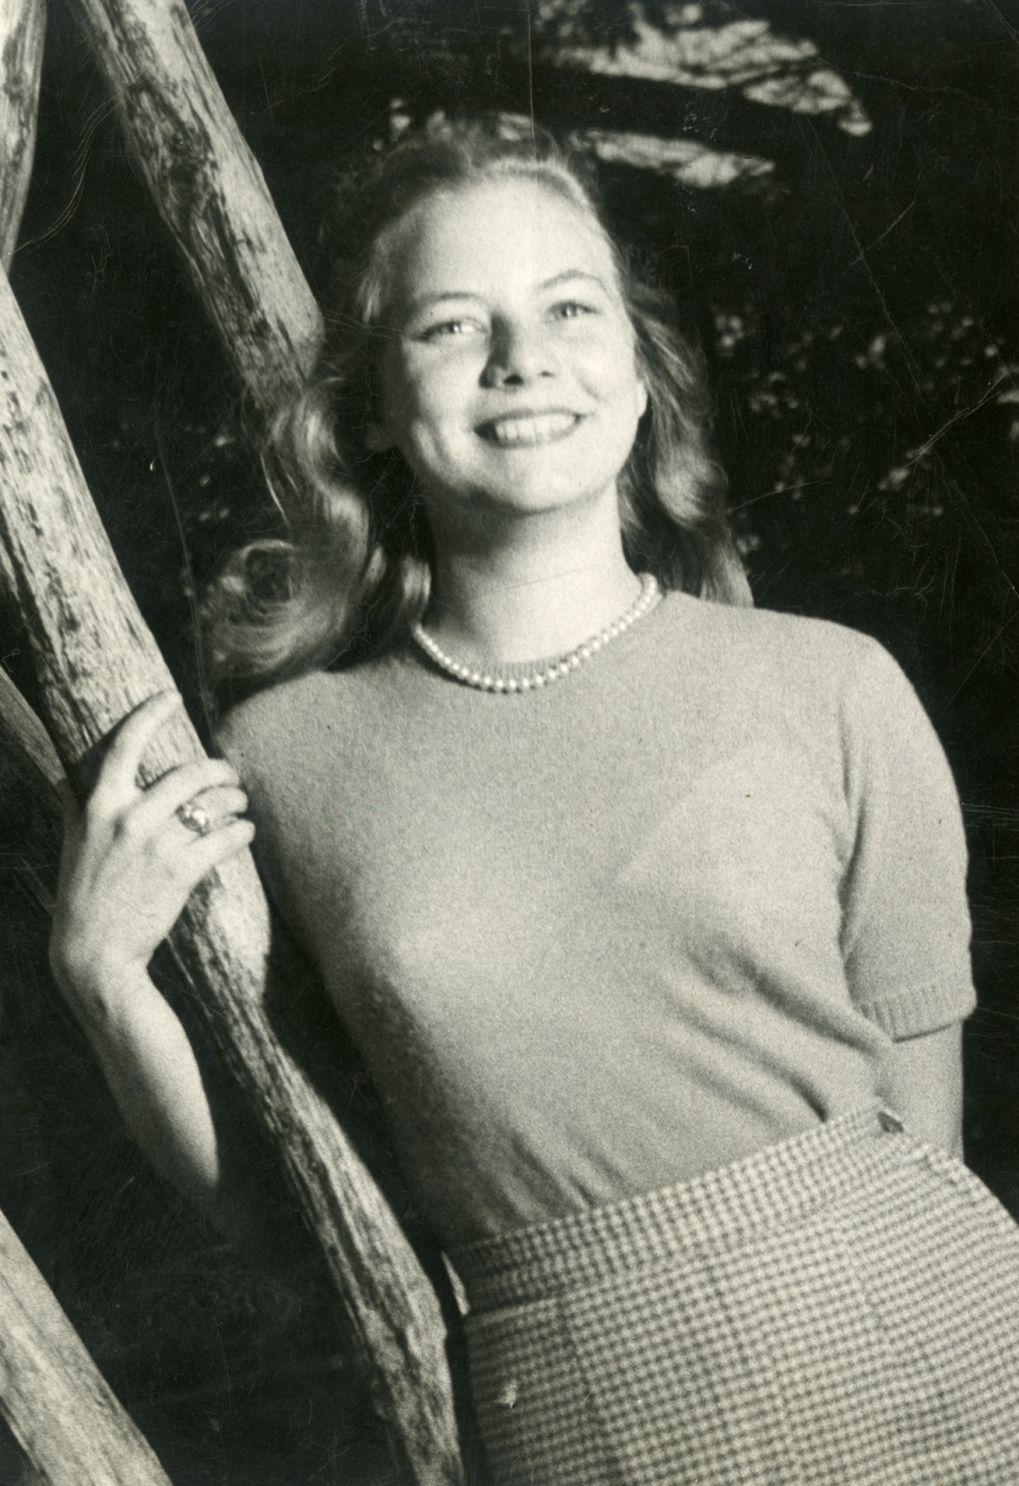 Image 001, College Photo